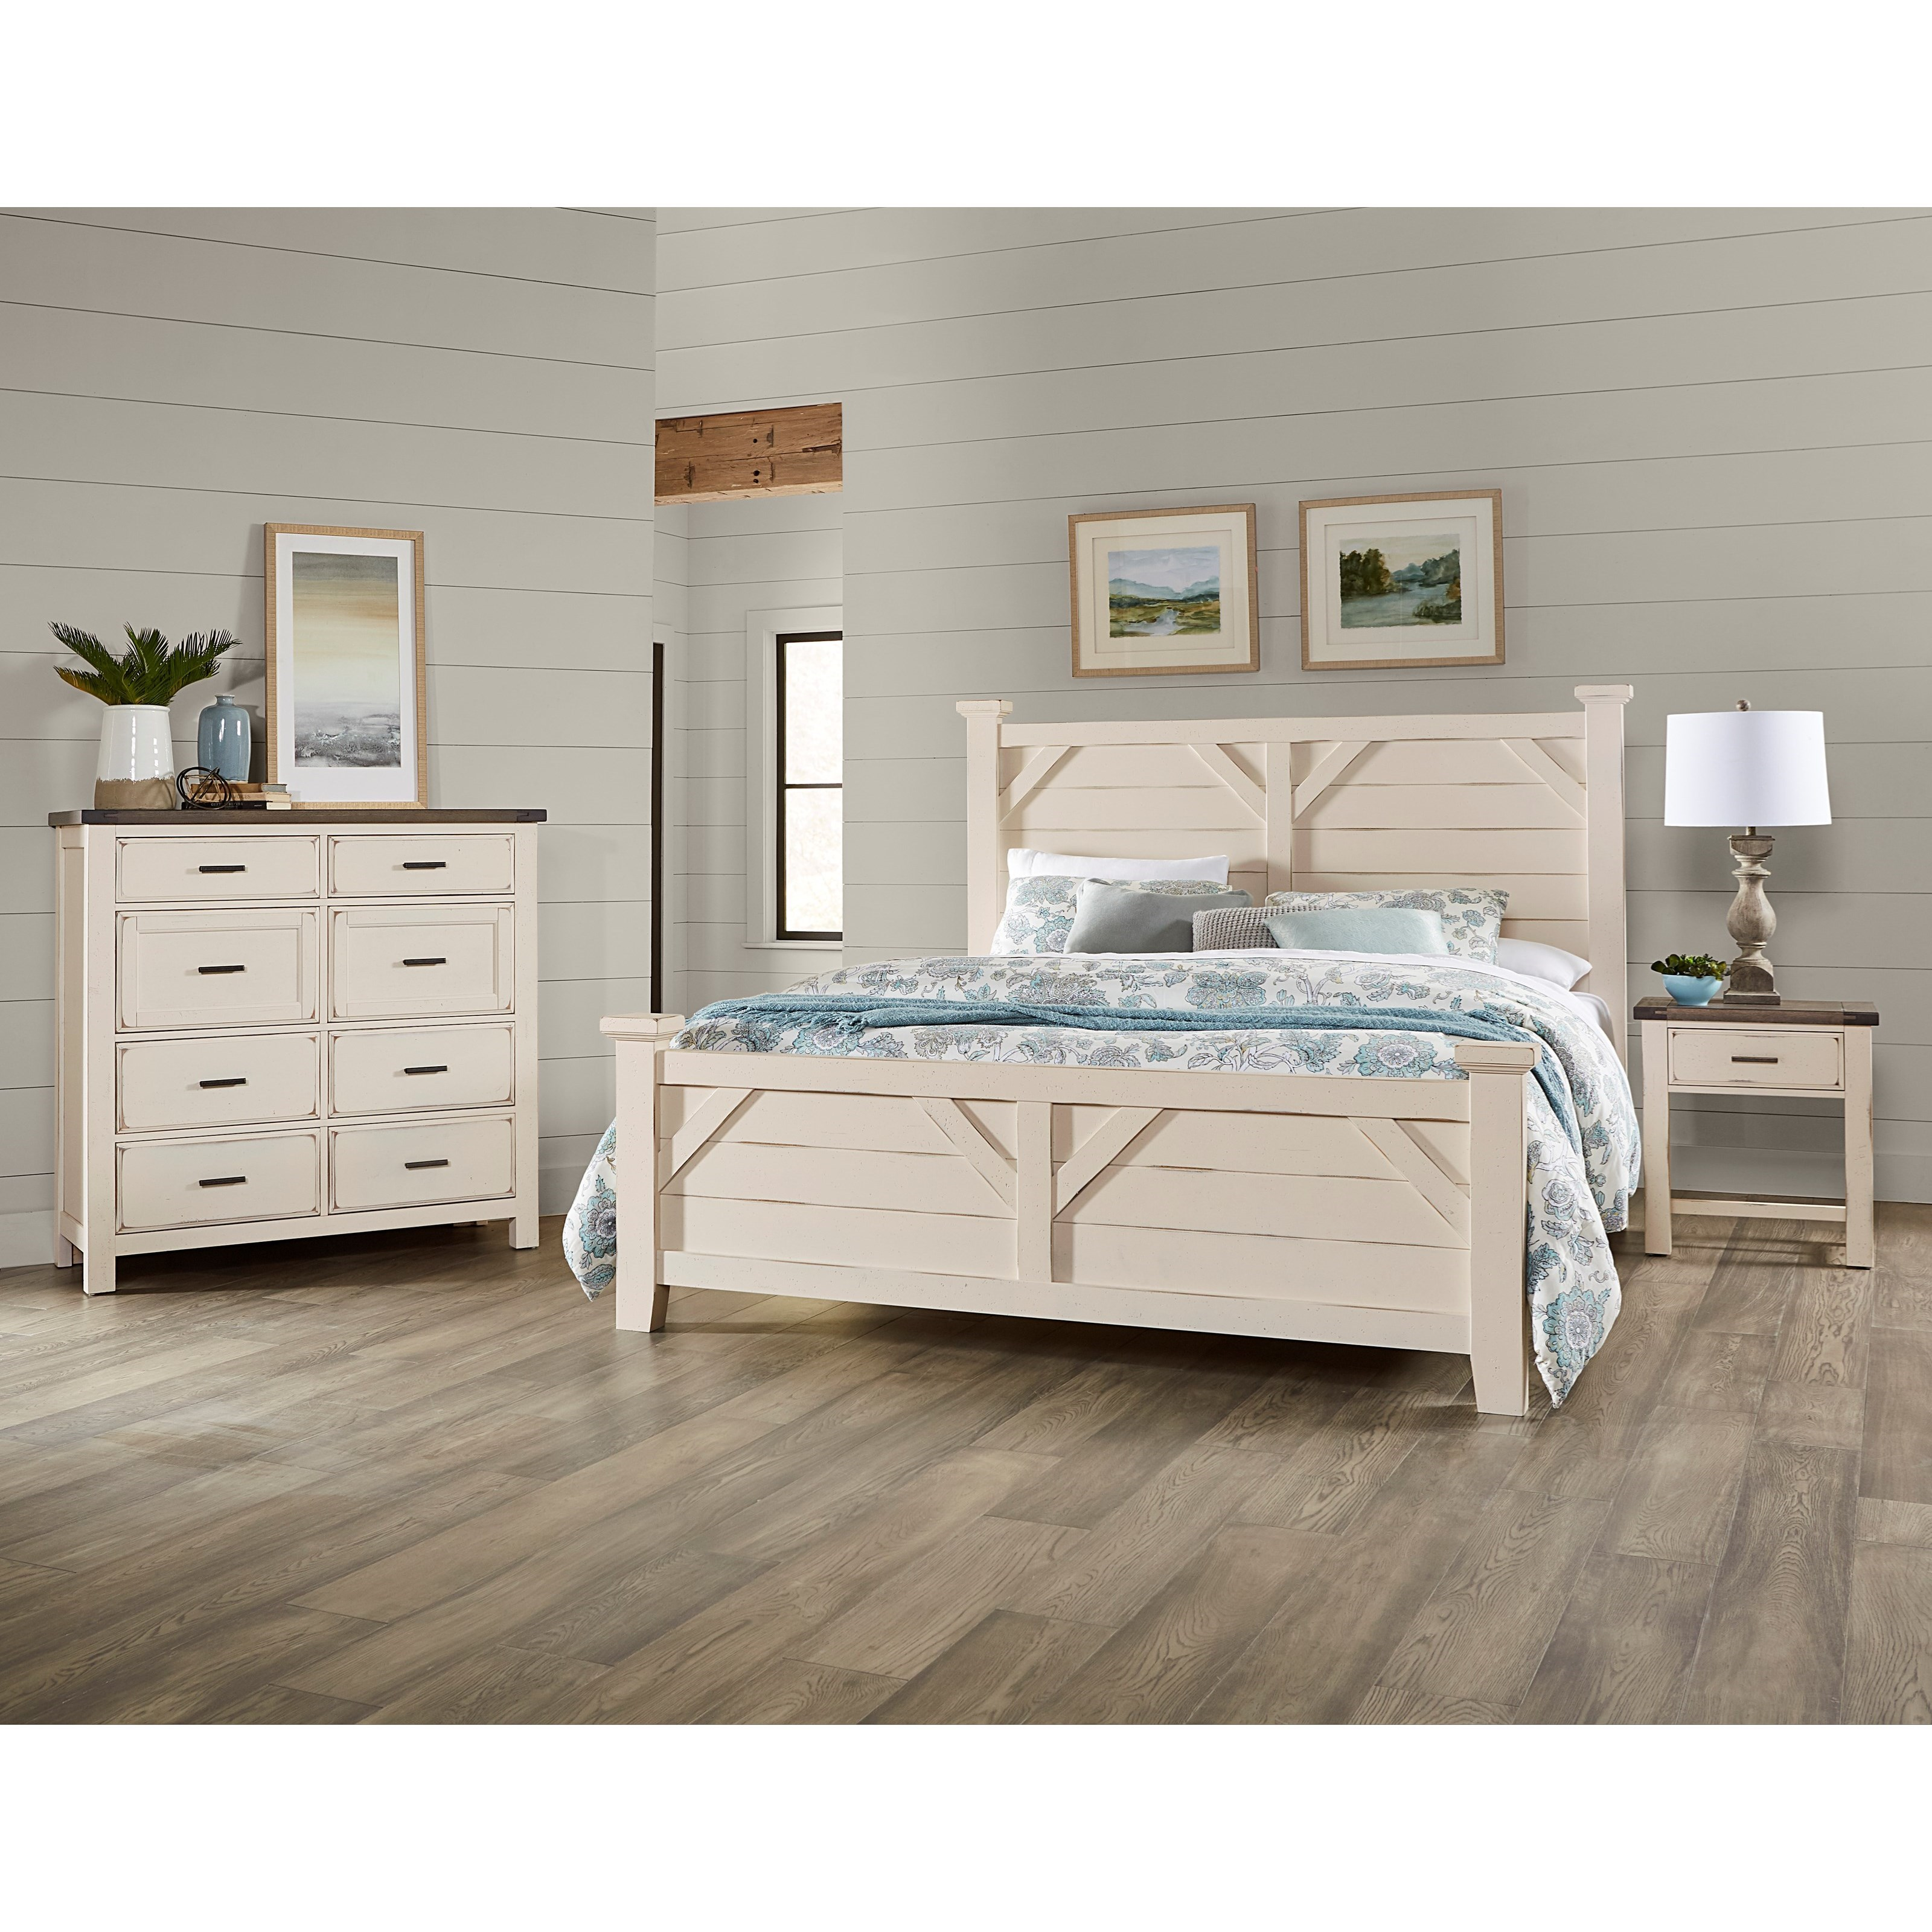 Chestnut Creek California King Bedroom Group by Centennial Solids at Rooms and Rest